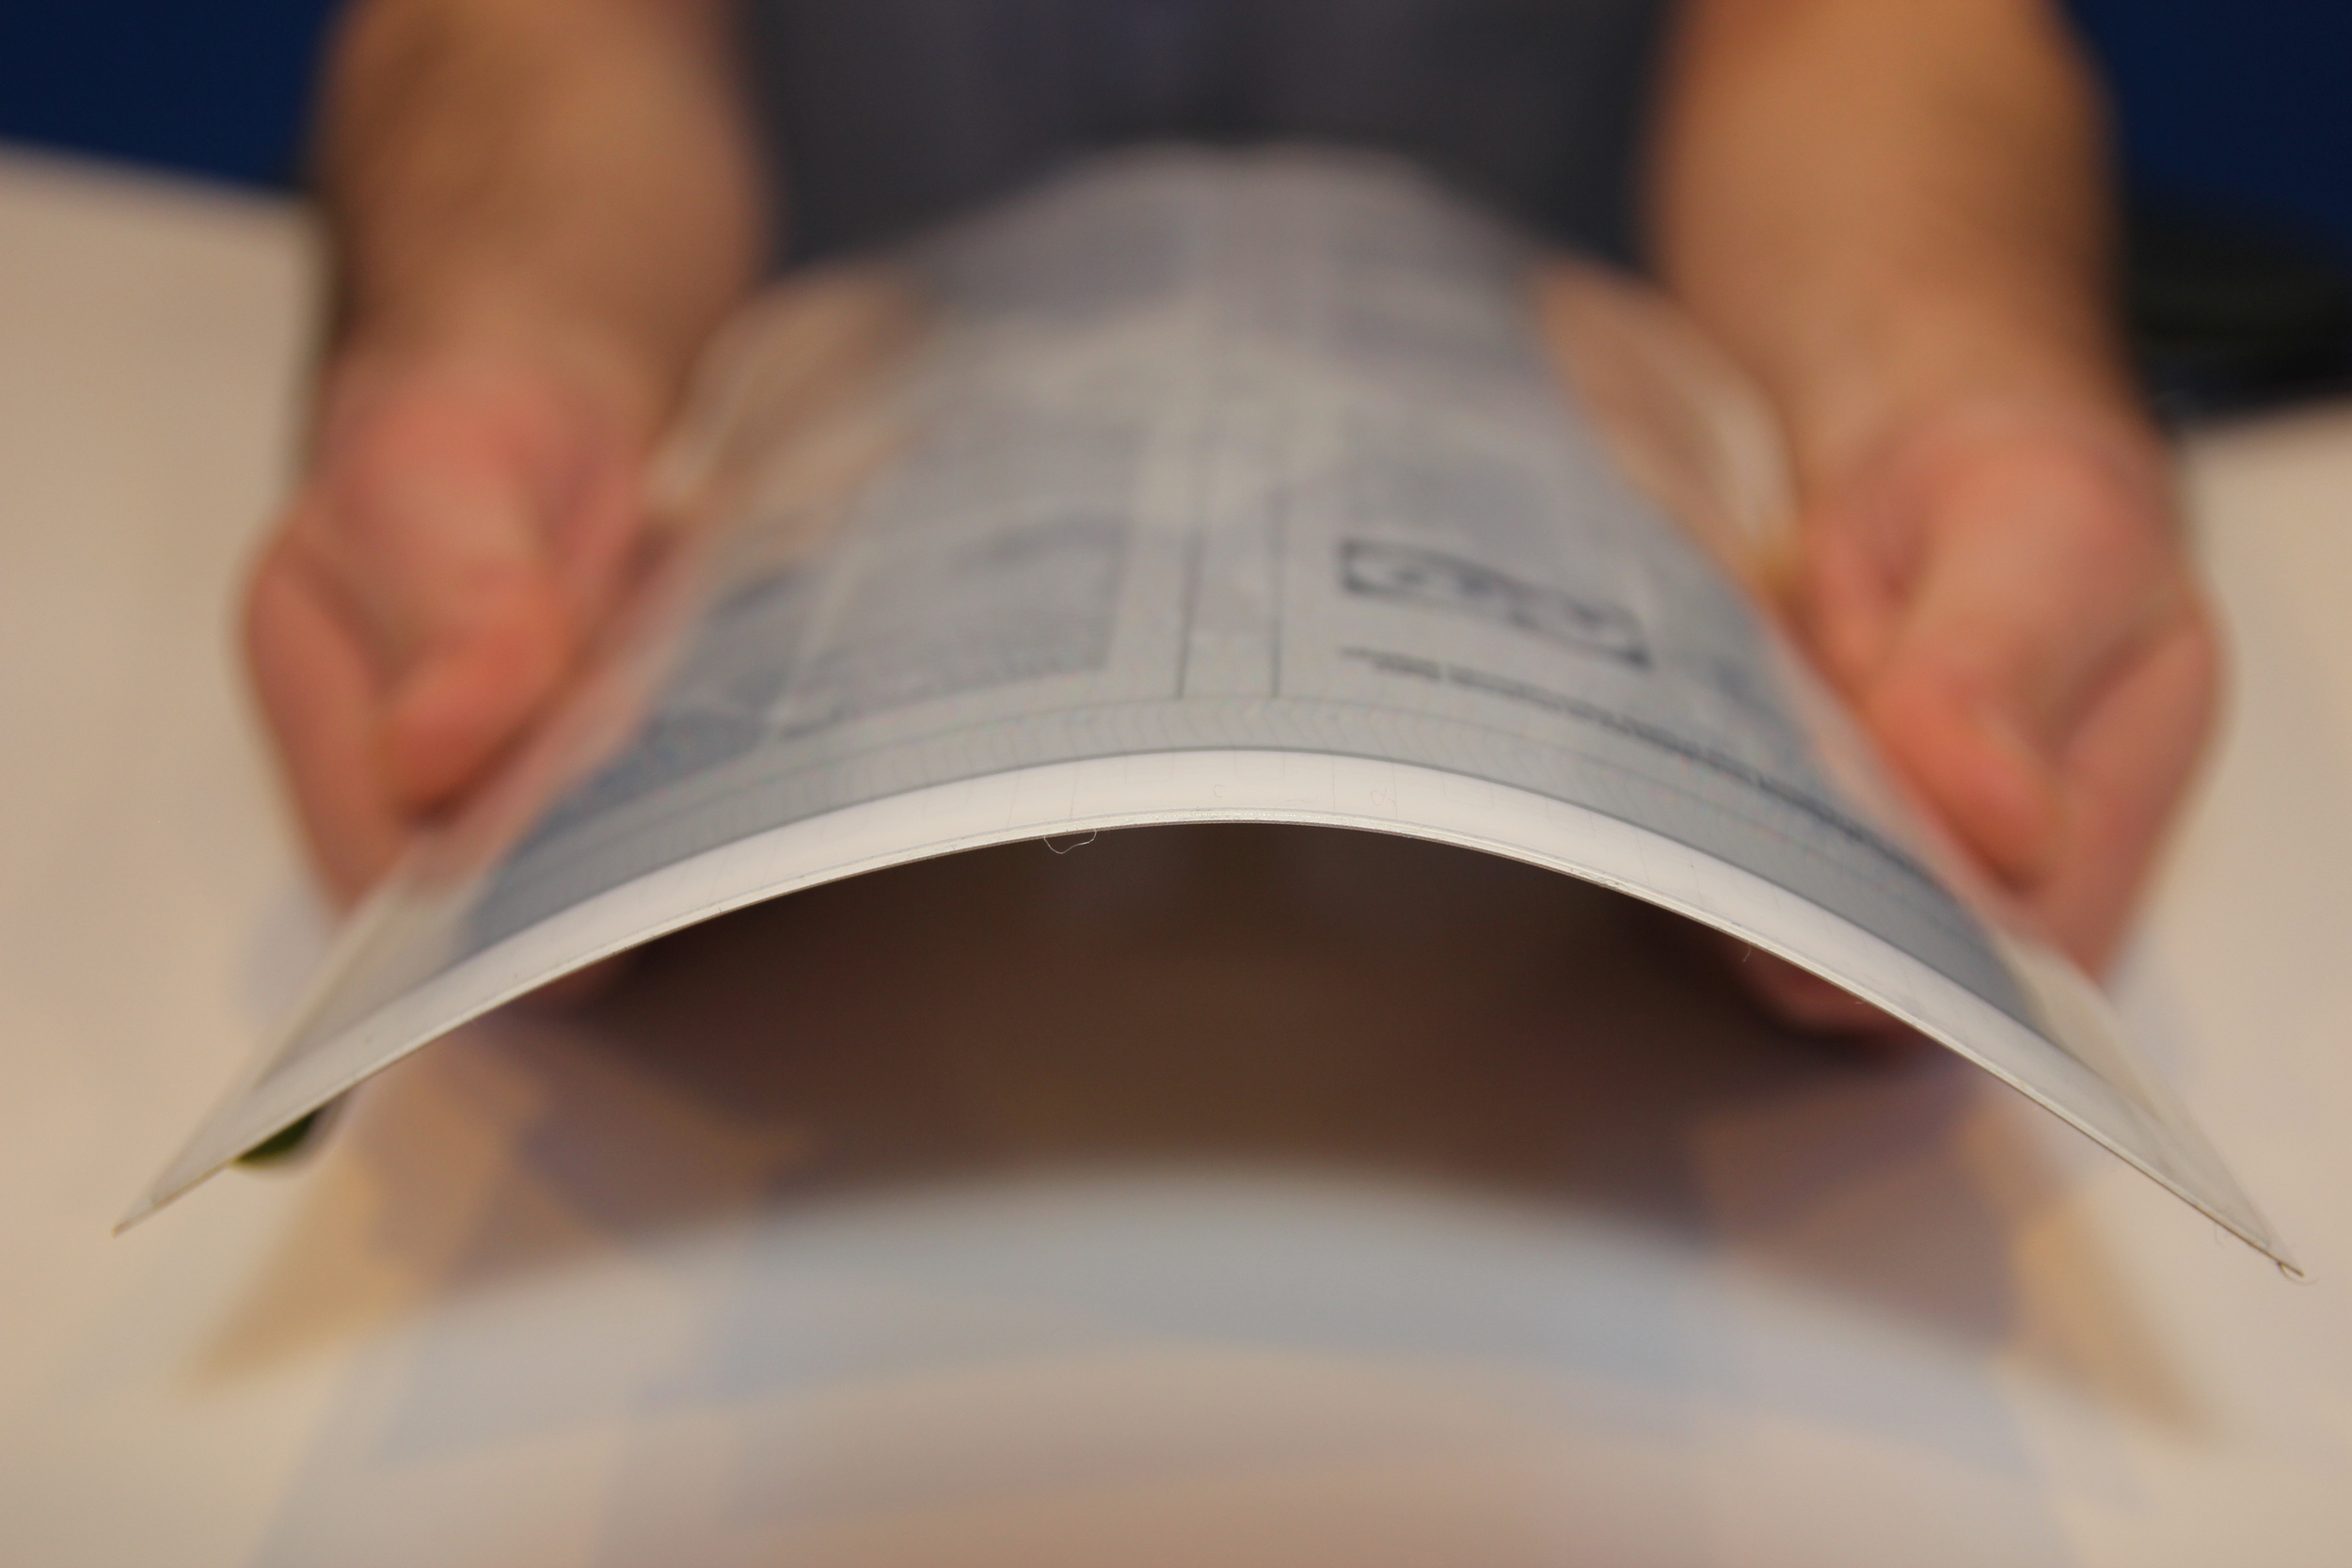 papertab (2012): bend gesture to open or zoom in